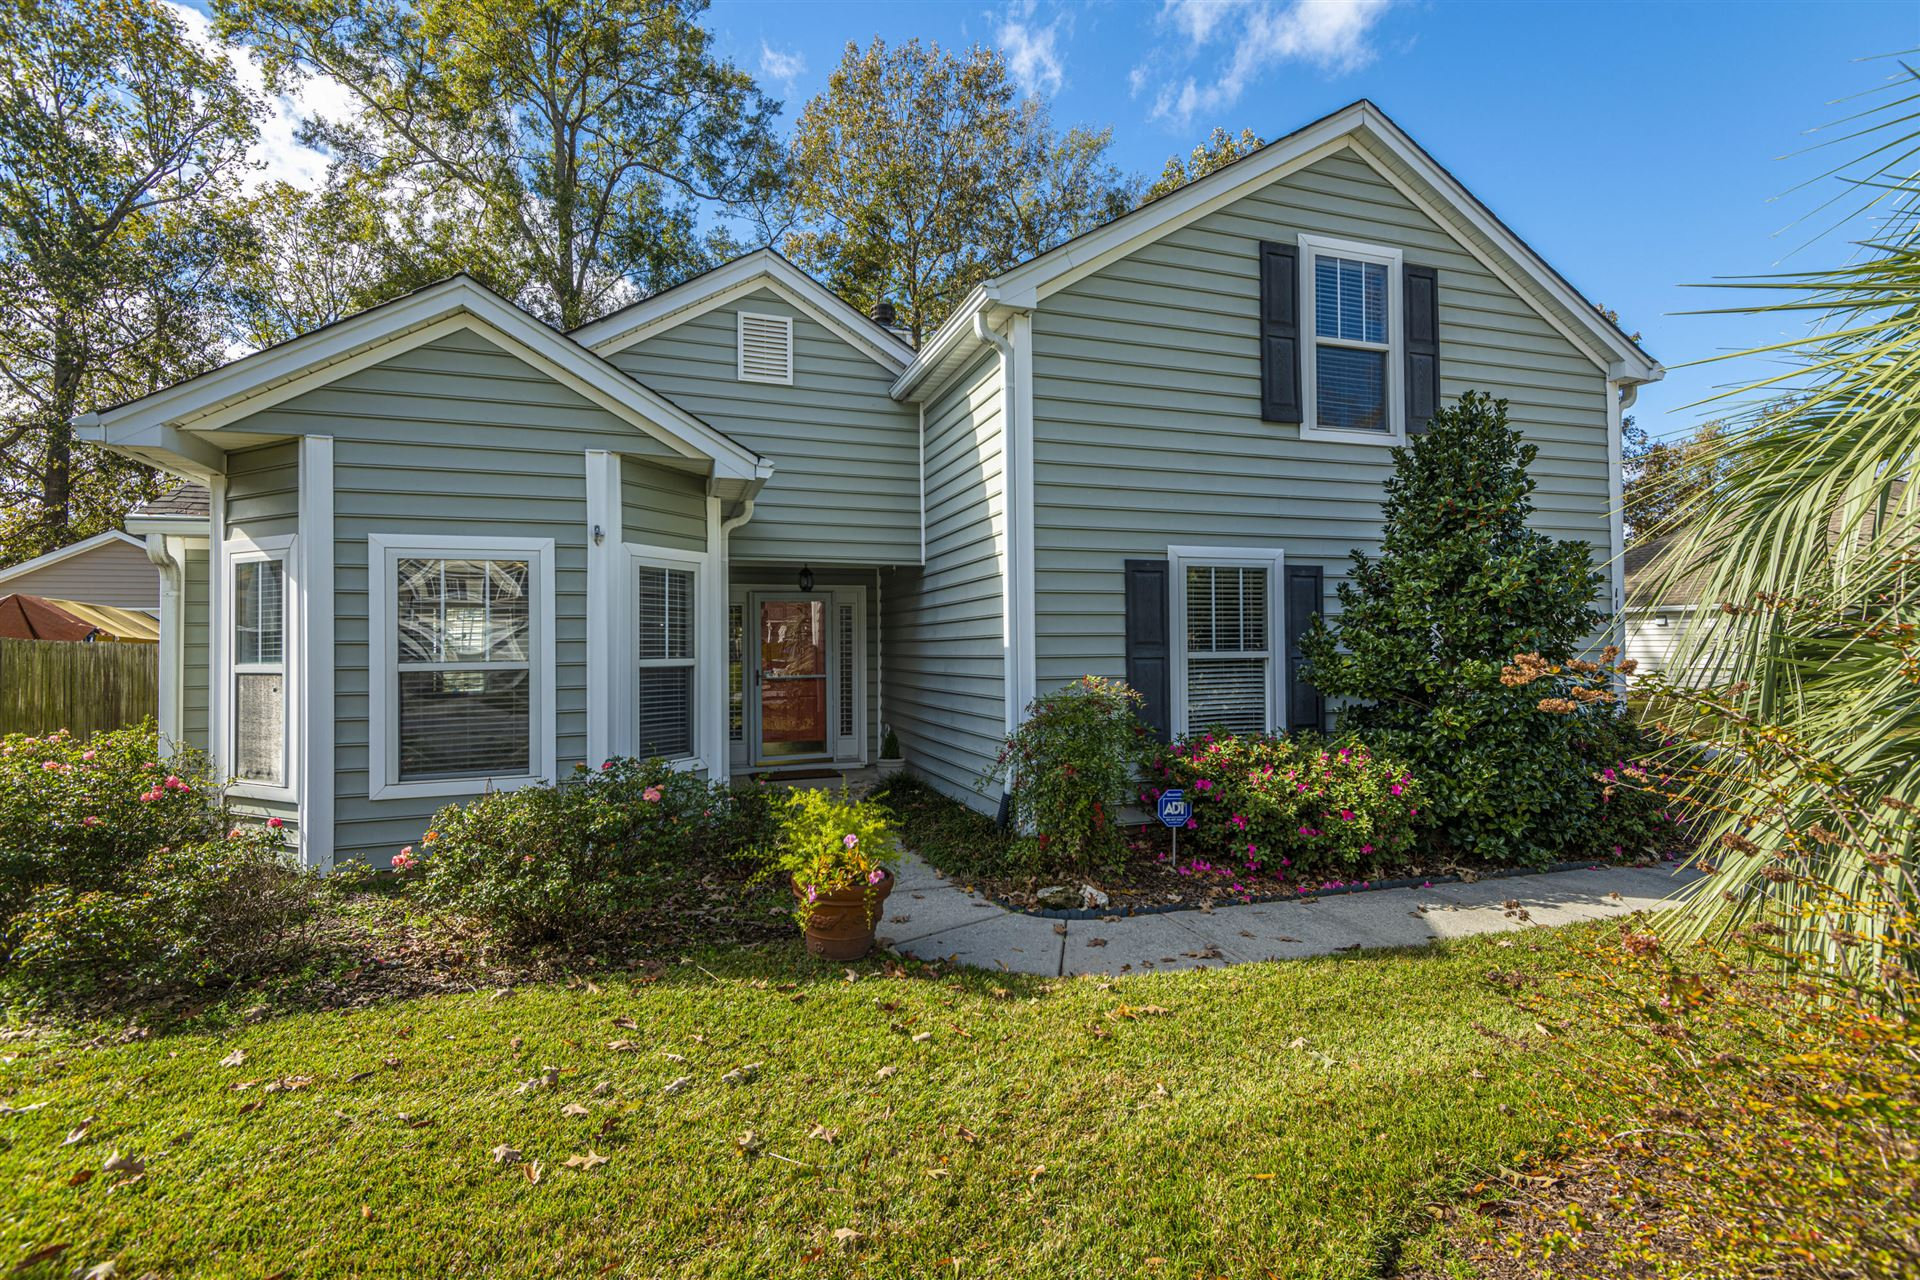 Photo of 113 Irish Oak Drive, Goose Creek, SC 29445 (MLS # 20032112)